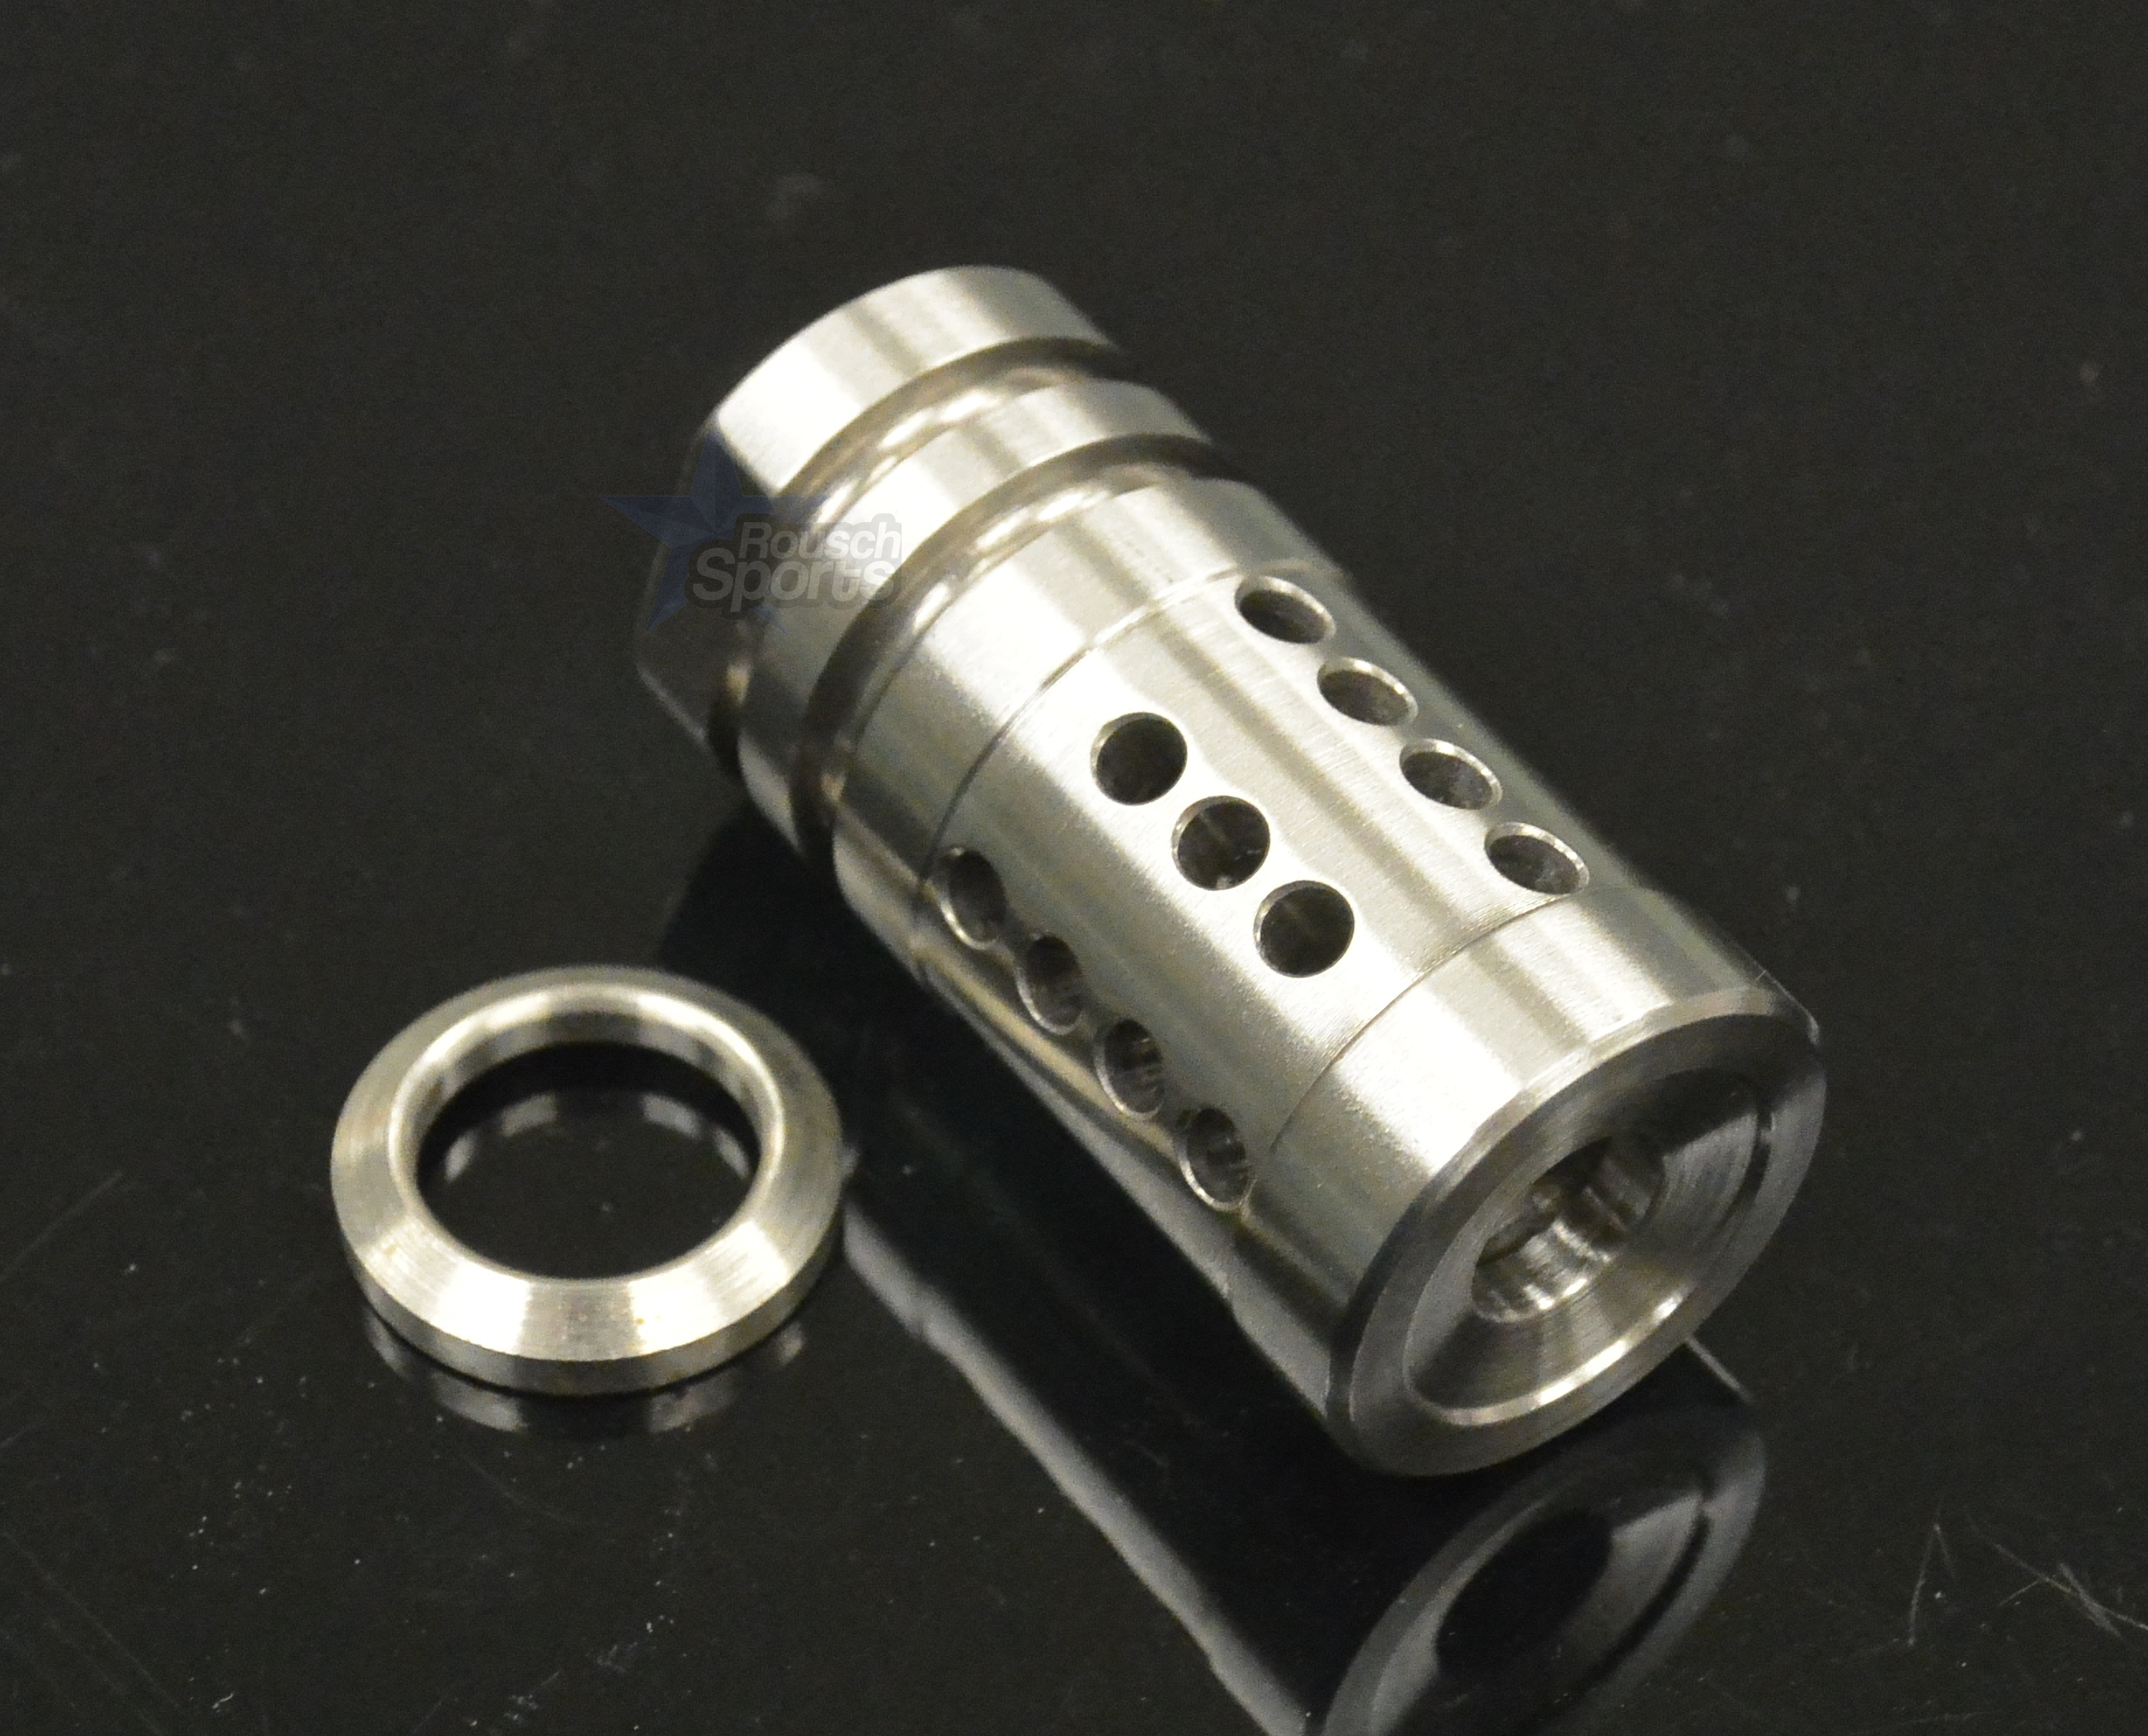 Fxh c shorty stainless steel muzzle brake compensator a